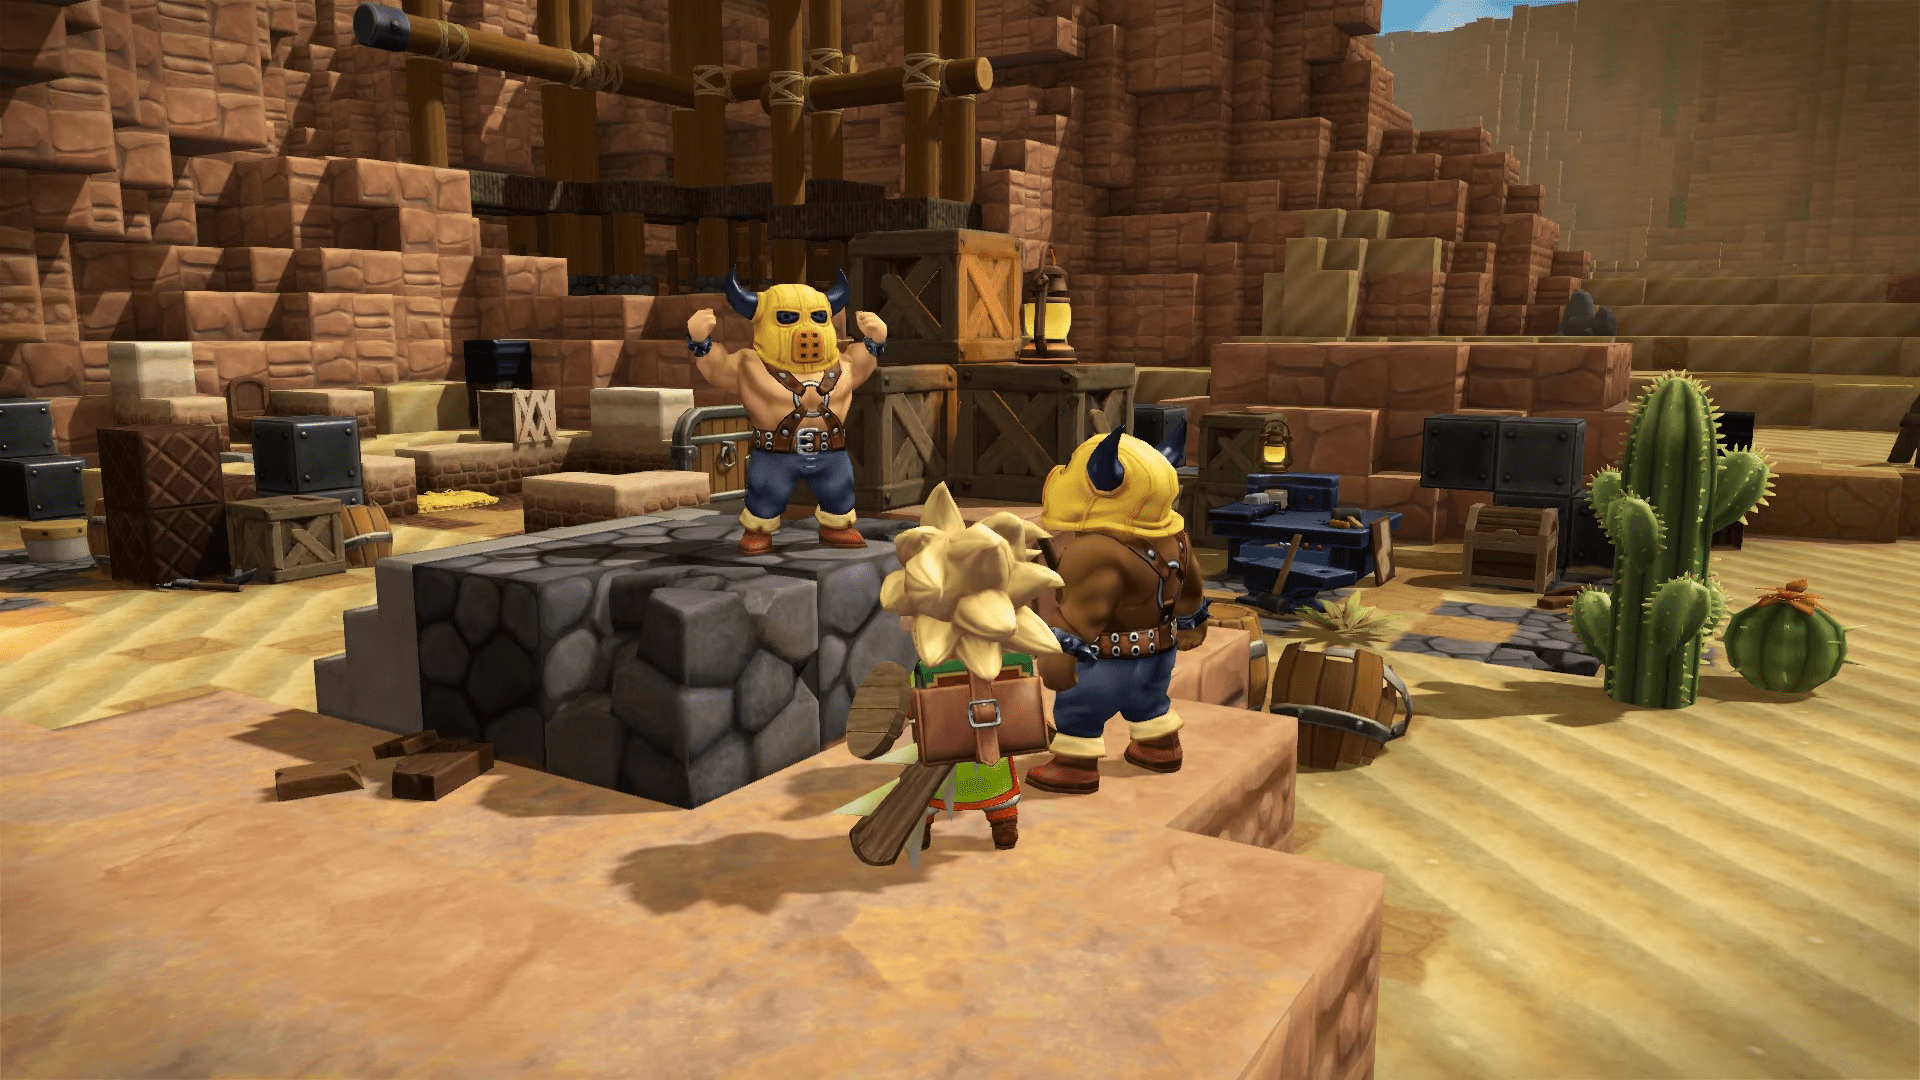 Minecraft Style Dragon Quest Builders 2 Comes Out Today For Playstation 4 And Nintendo Switch Happy Gamer